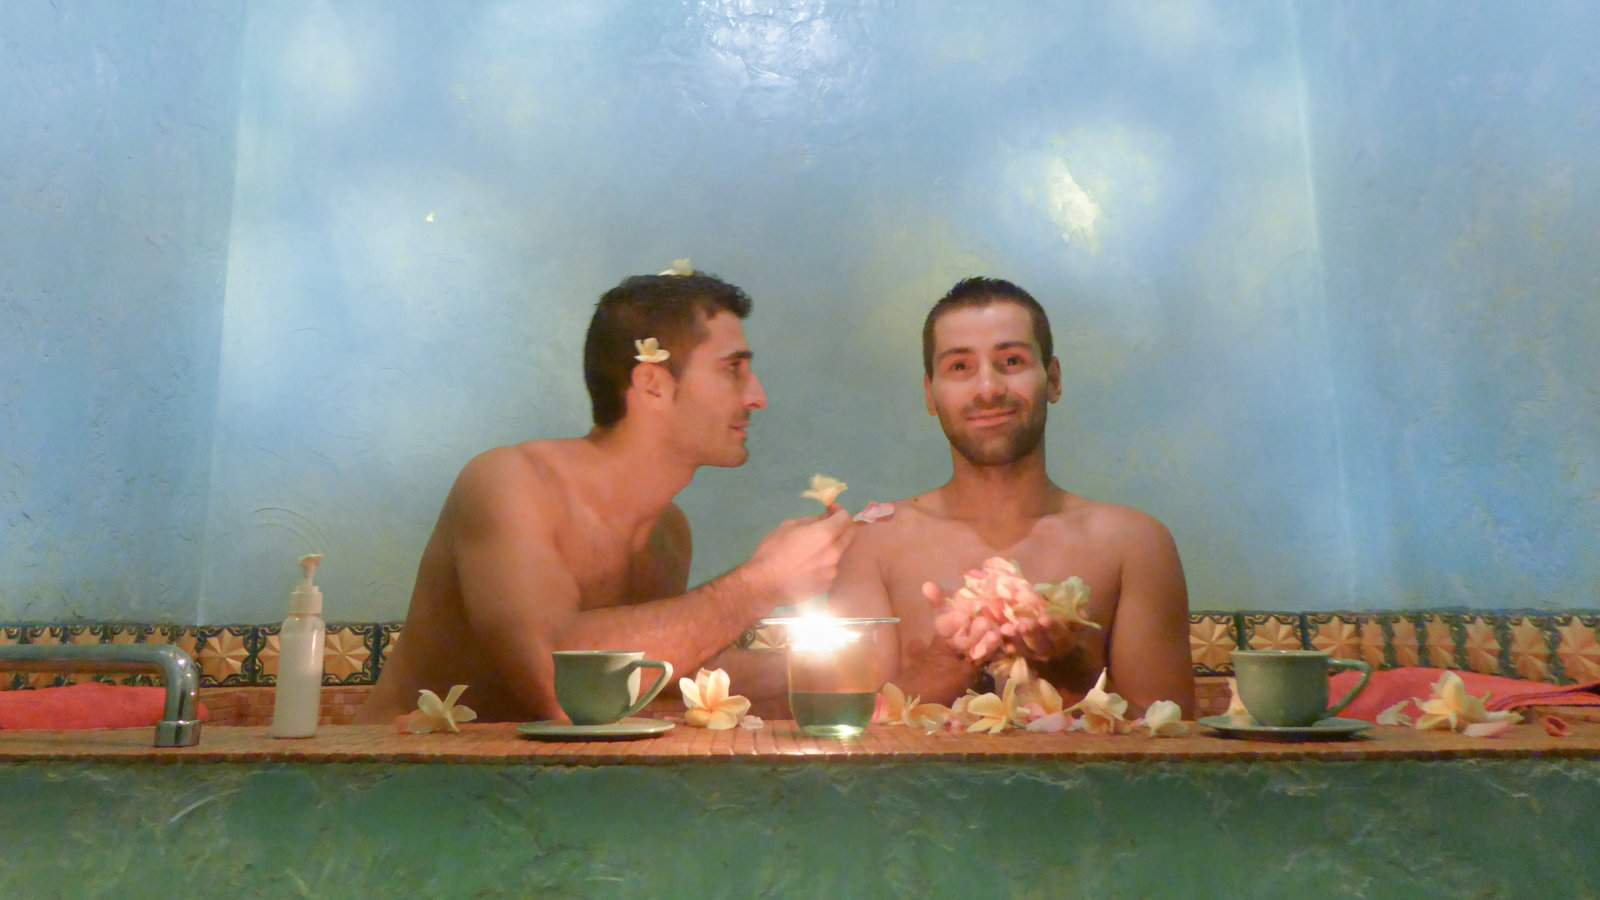 There's one main gay sauna in Siem Reap, as well as a queer friendly spa if you want some pampering